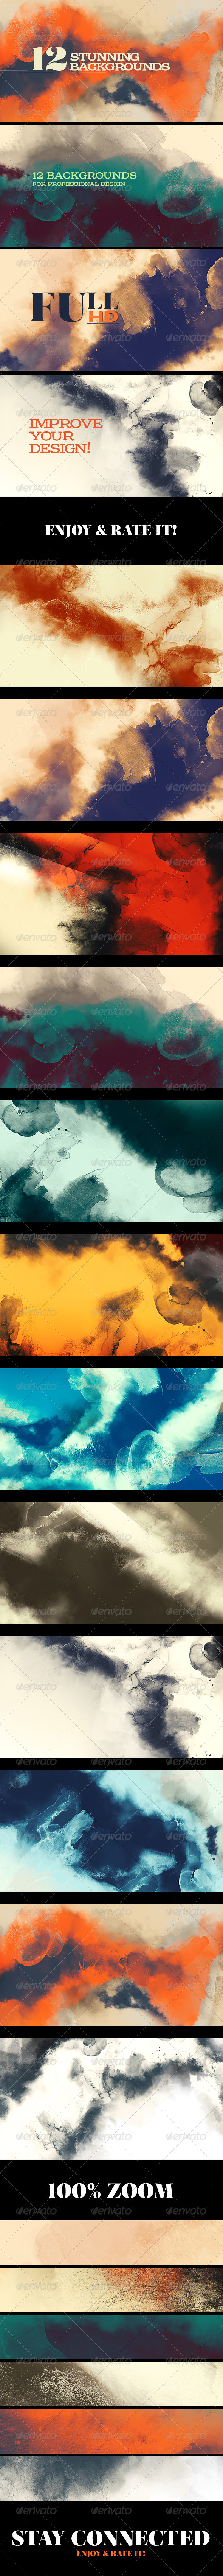 12 Painting/Watercolor Backgrounds - Abstract Backgrounds